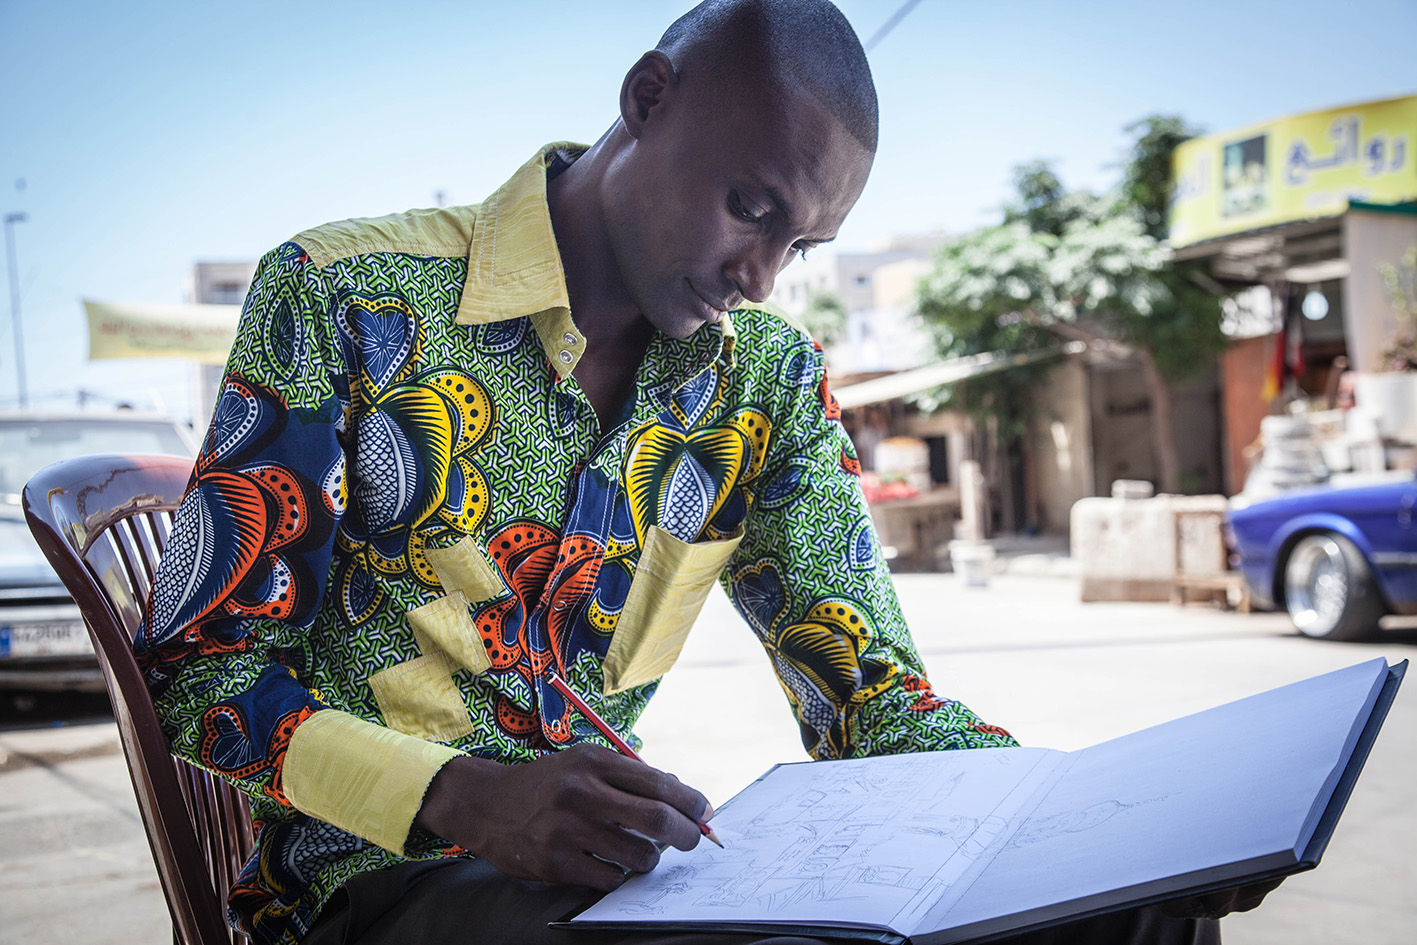 Didier Kassai draws in his sketch pad